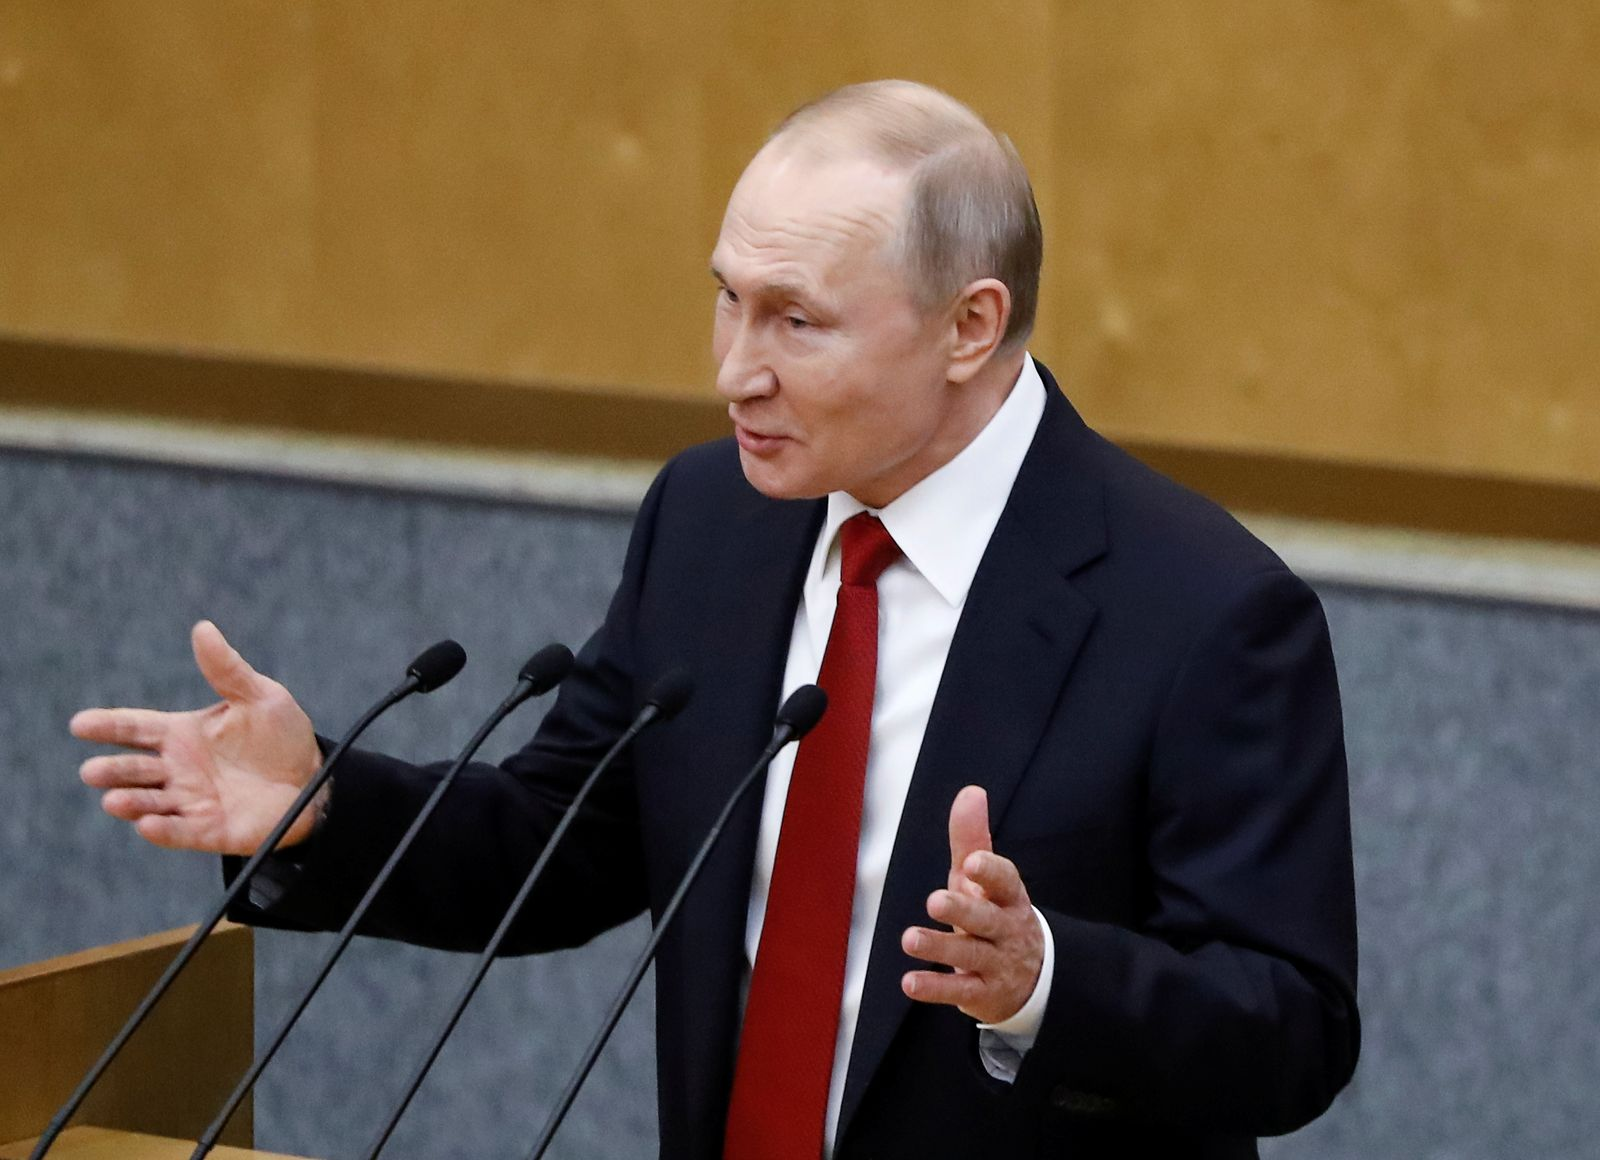 Russia's President Putin attends a session of the lower house of parliament in Moscow